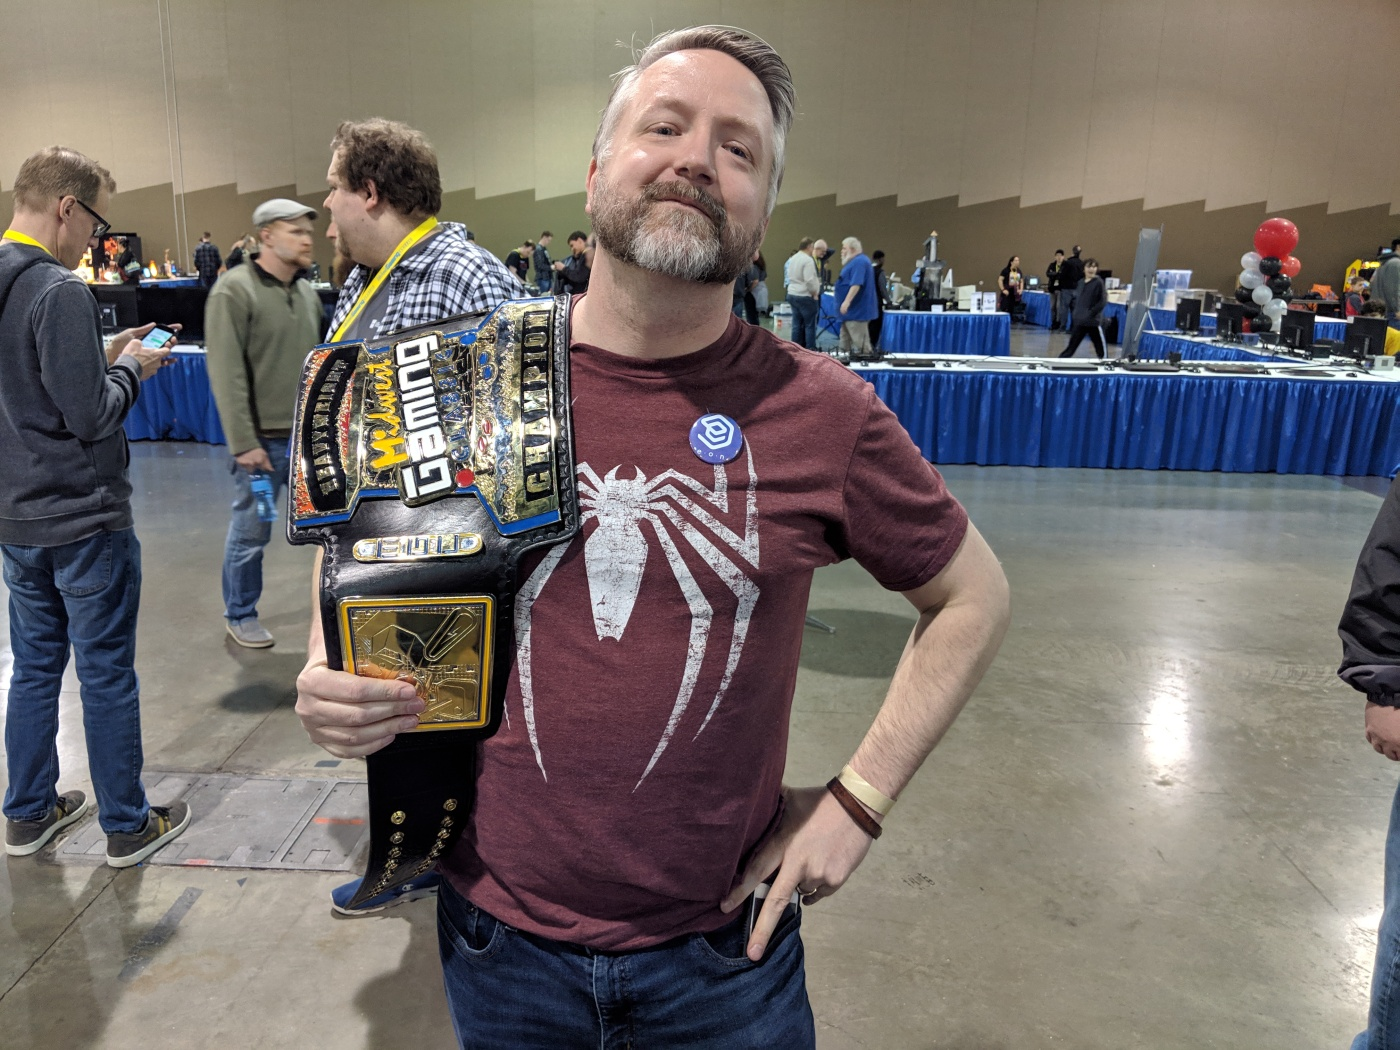 Tom with a championship belt